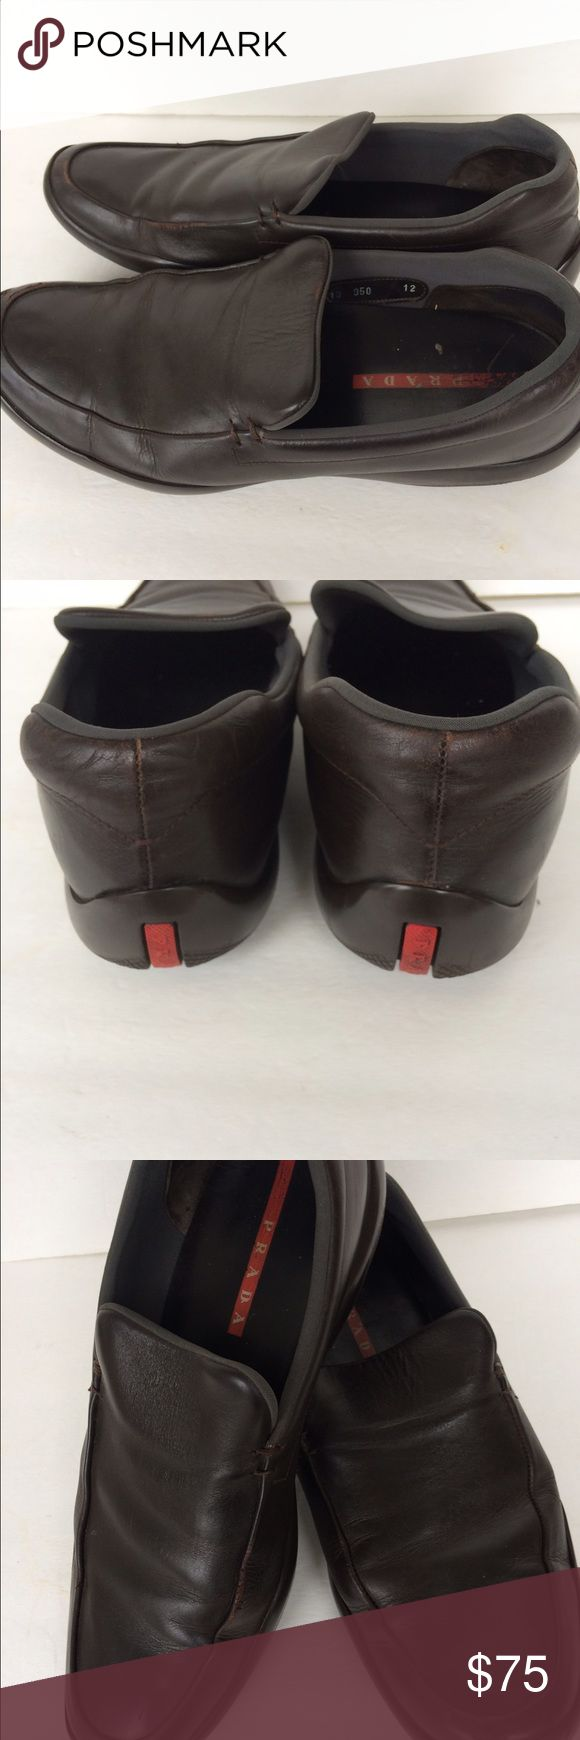 Men's Prada Loafers Prada leather loafers size 12 pre-owned. Prada Shoes Loafers & Slip-Ons